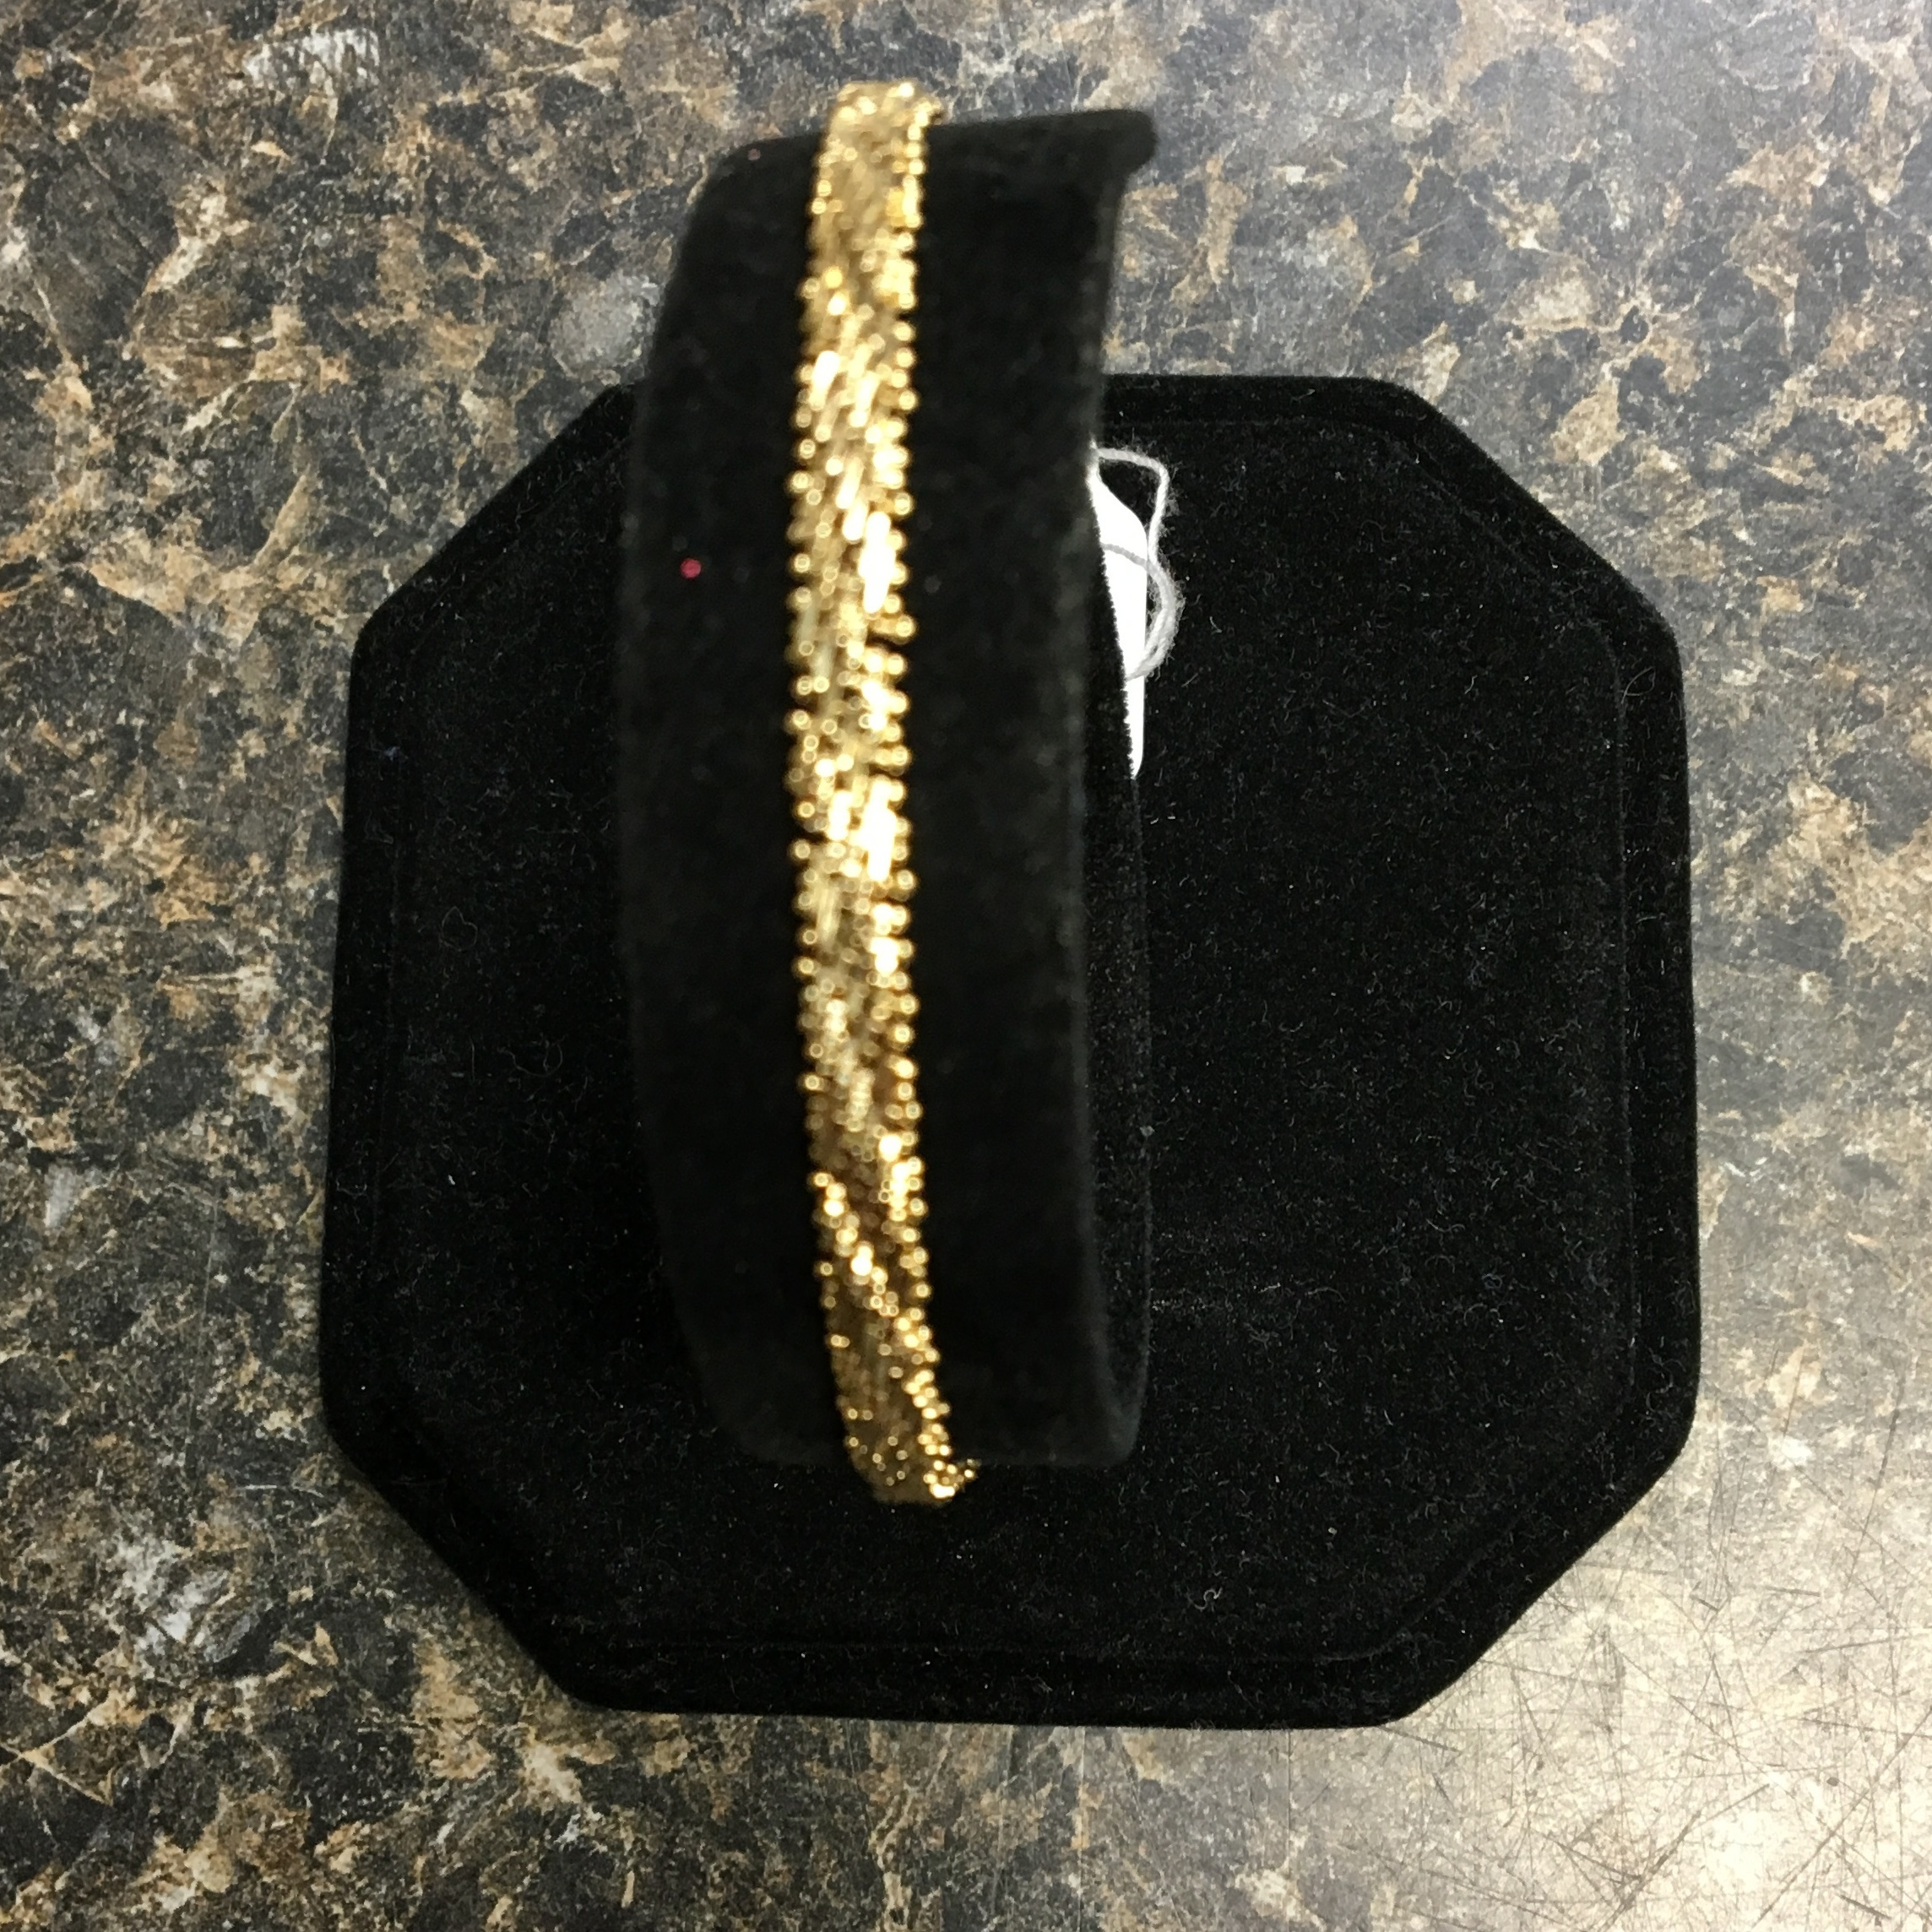 14 KT YELLOW GOLD BRACELET. DWT 6.67